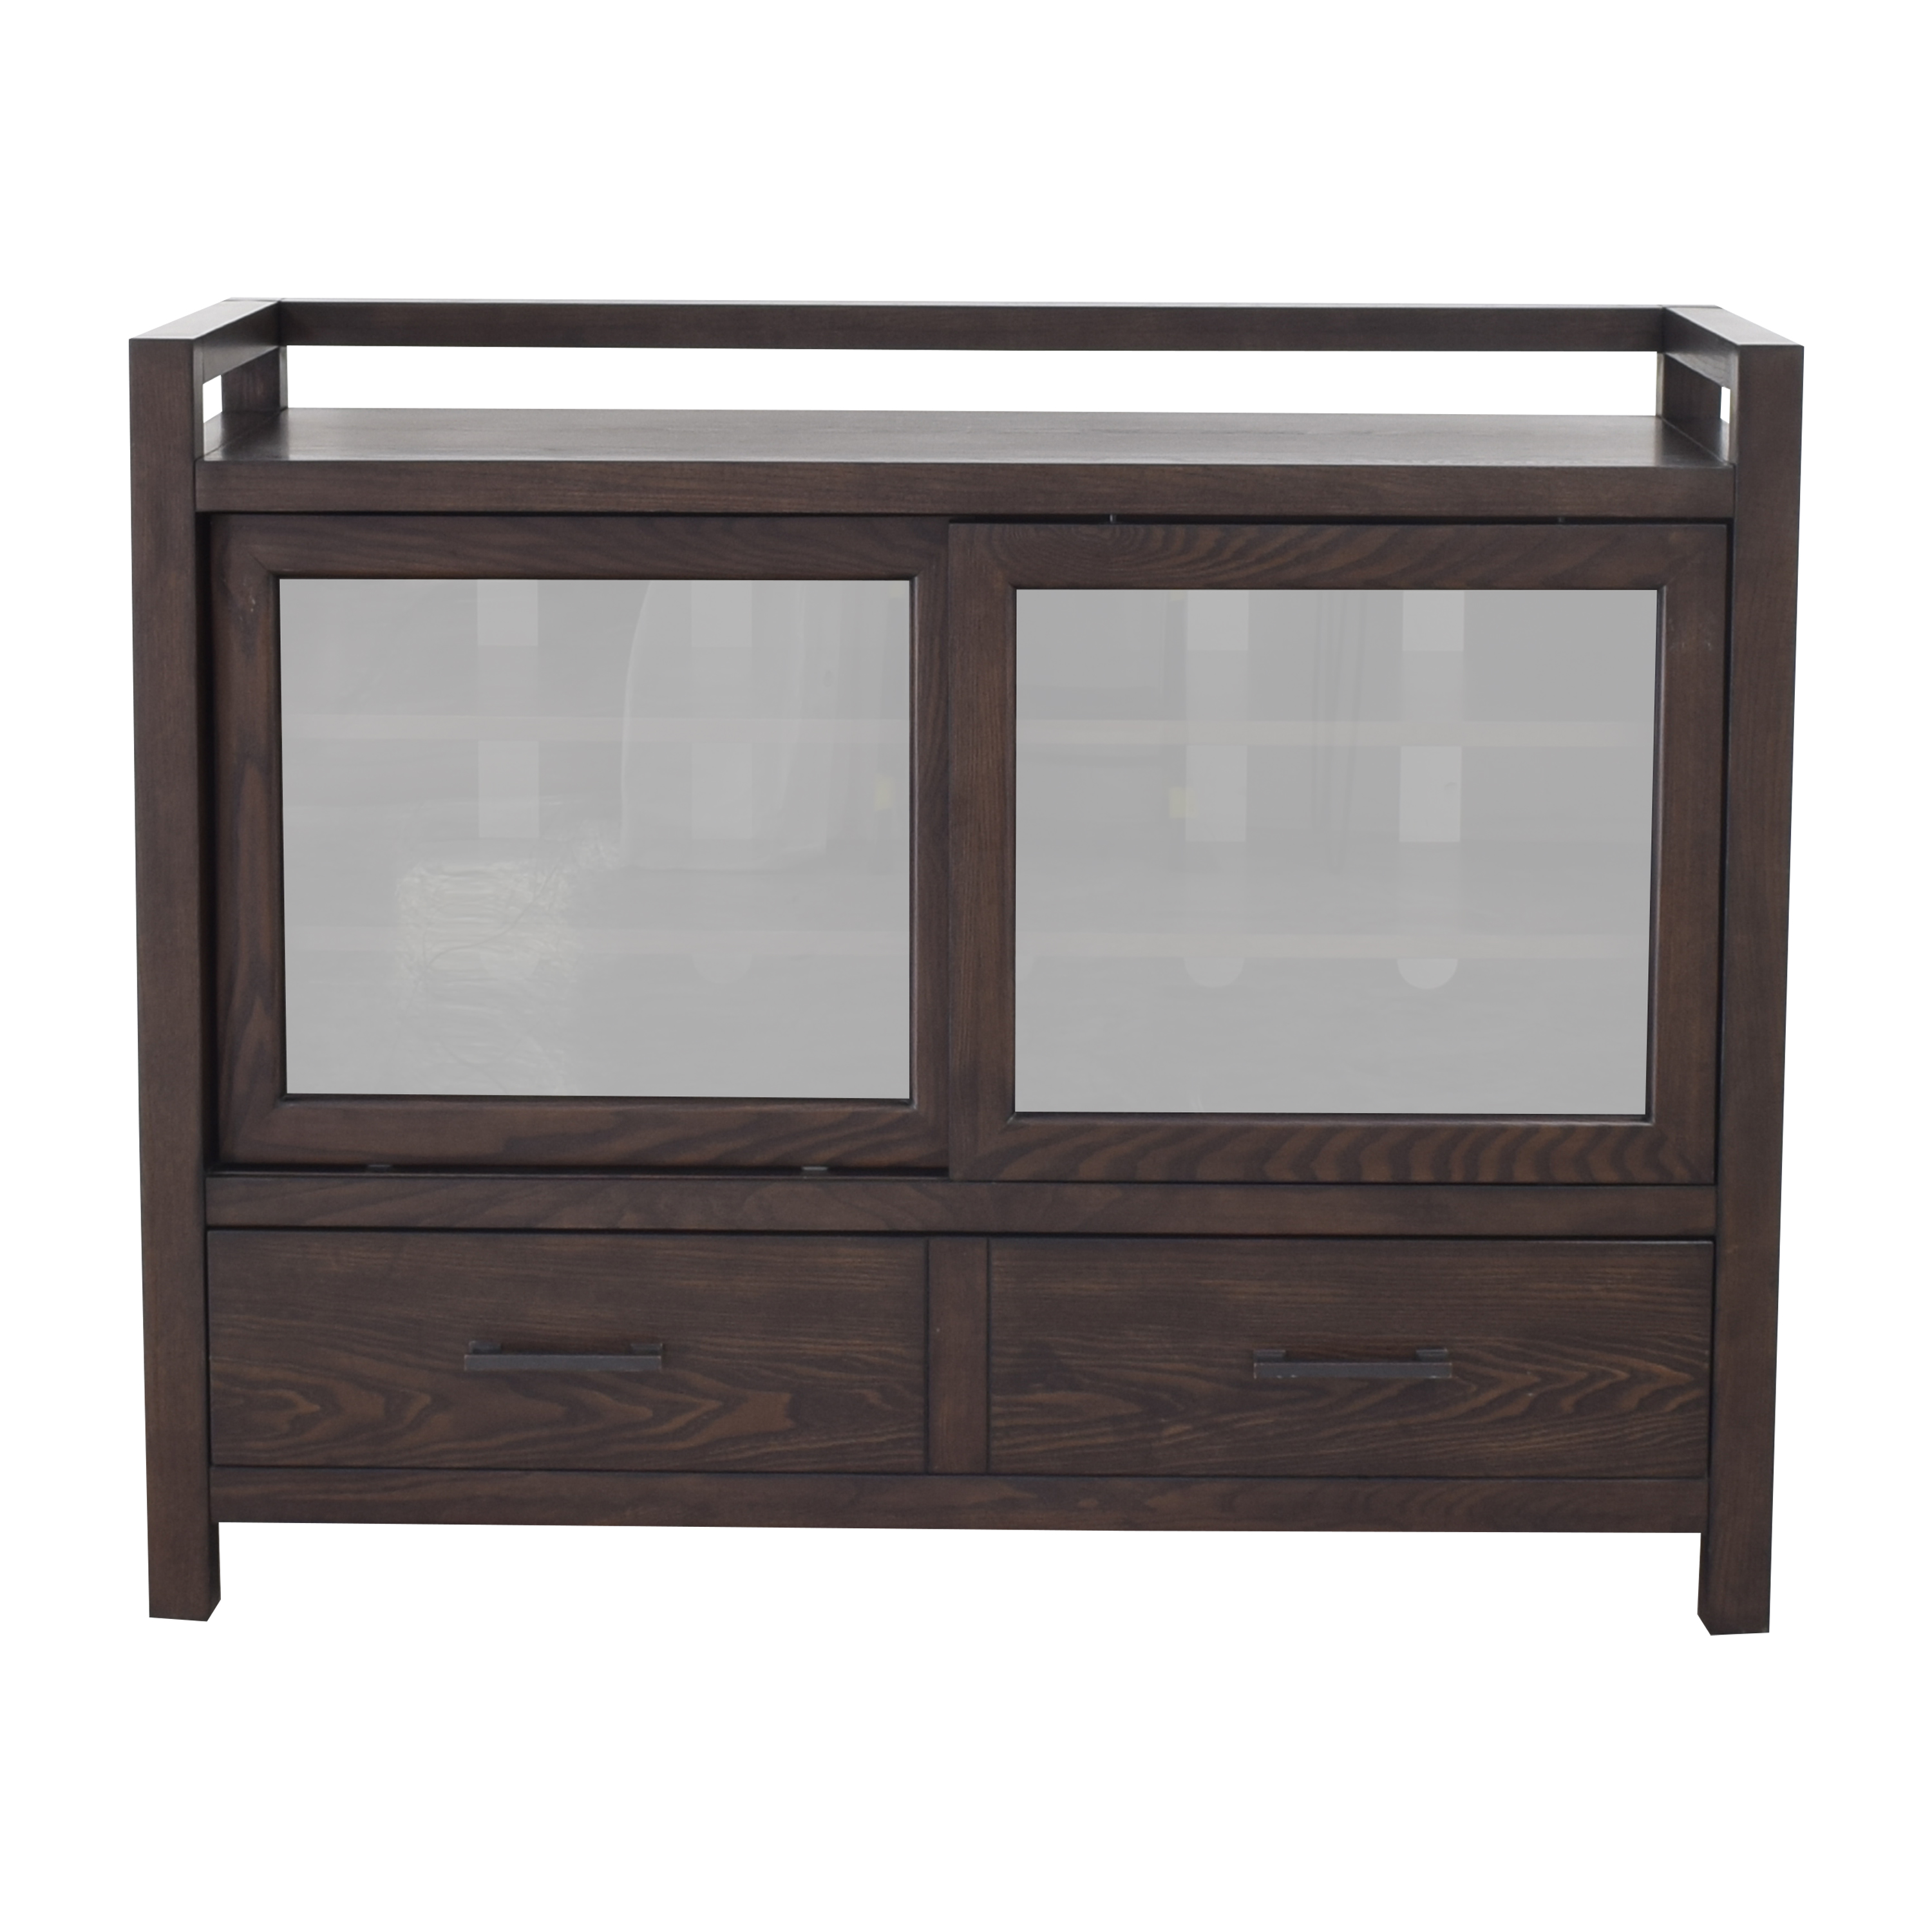 shop Crate & Barrel Sliding Door Media Console Crate & Barrel Storage